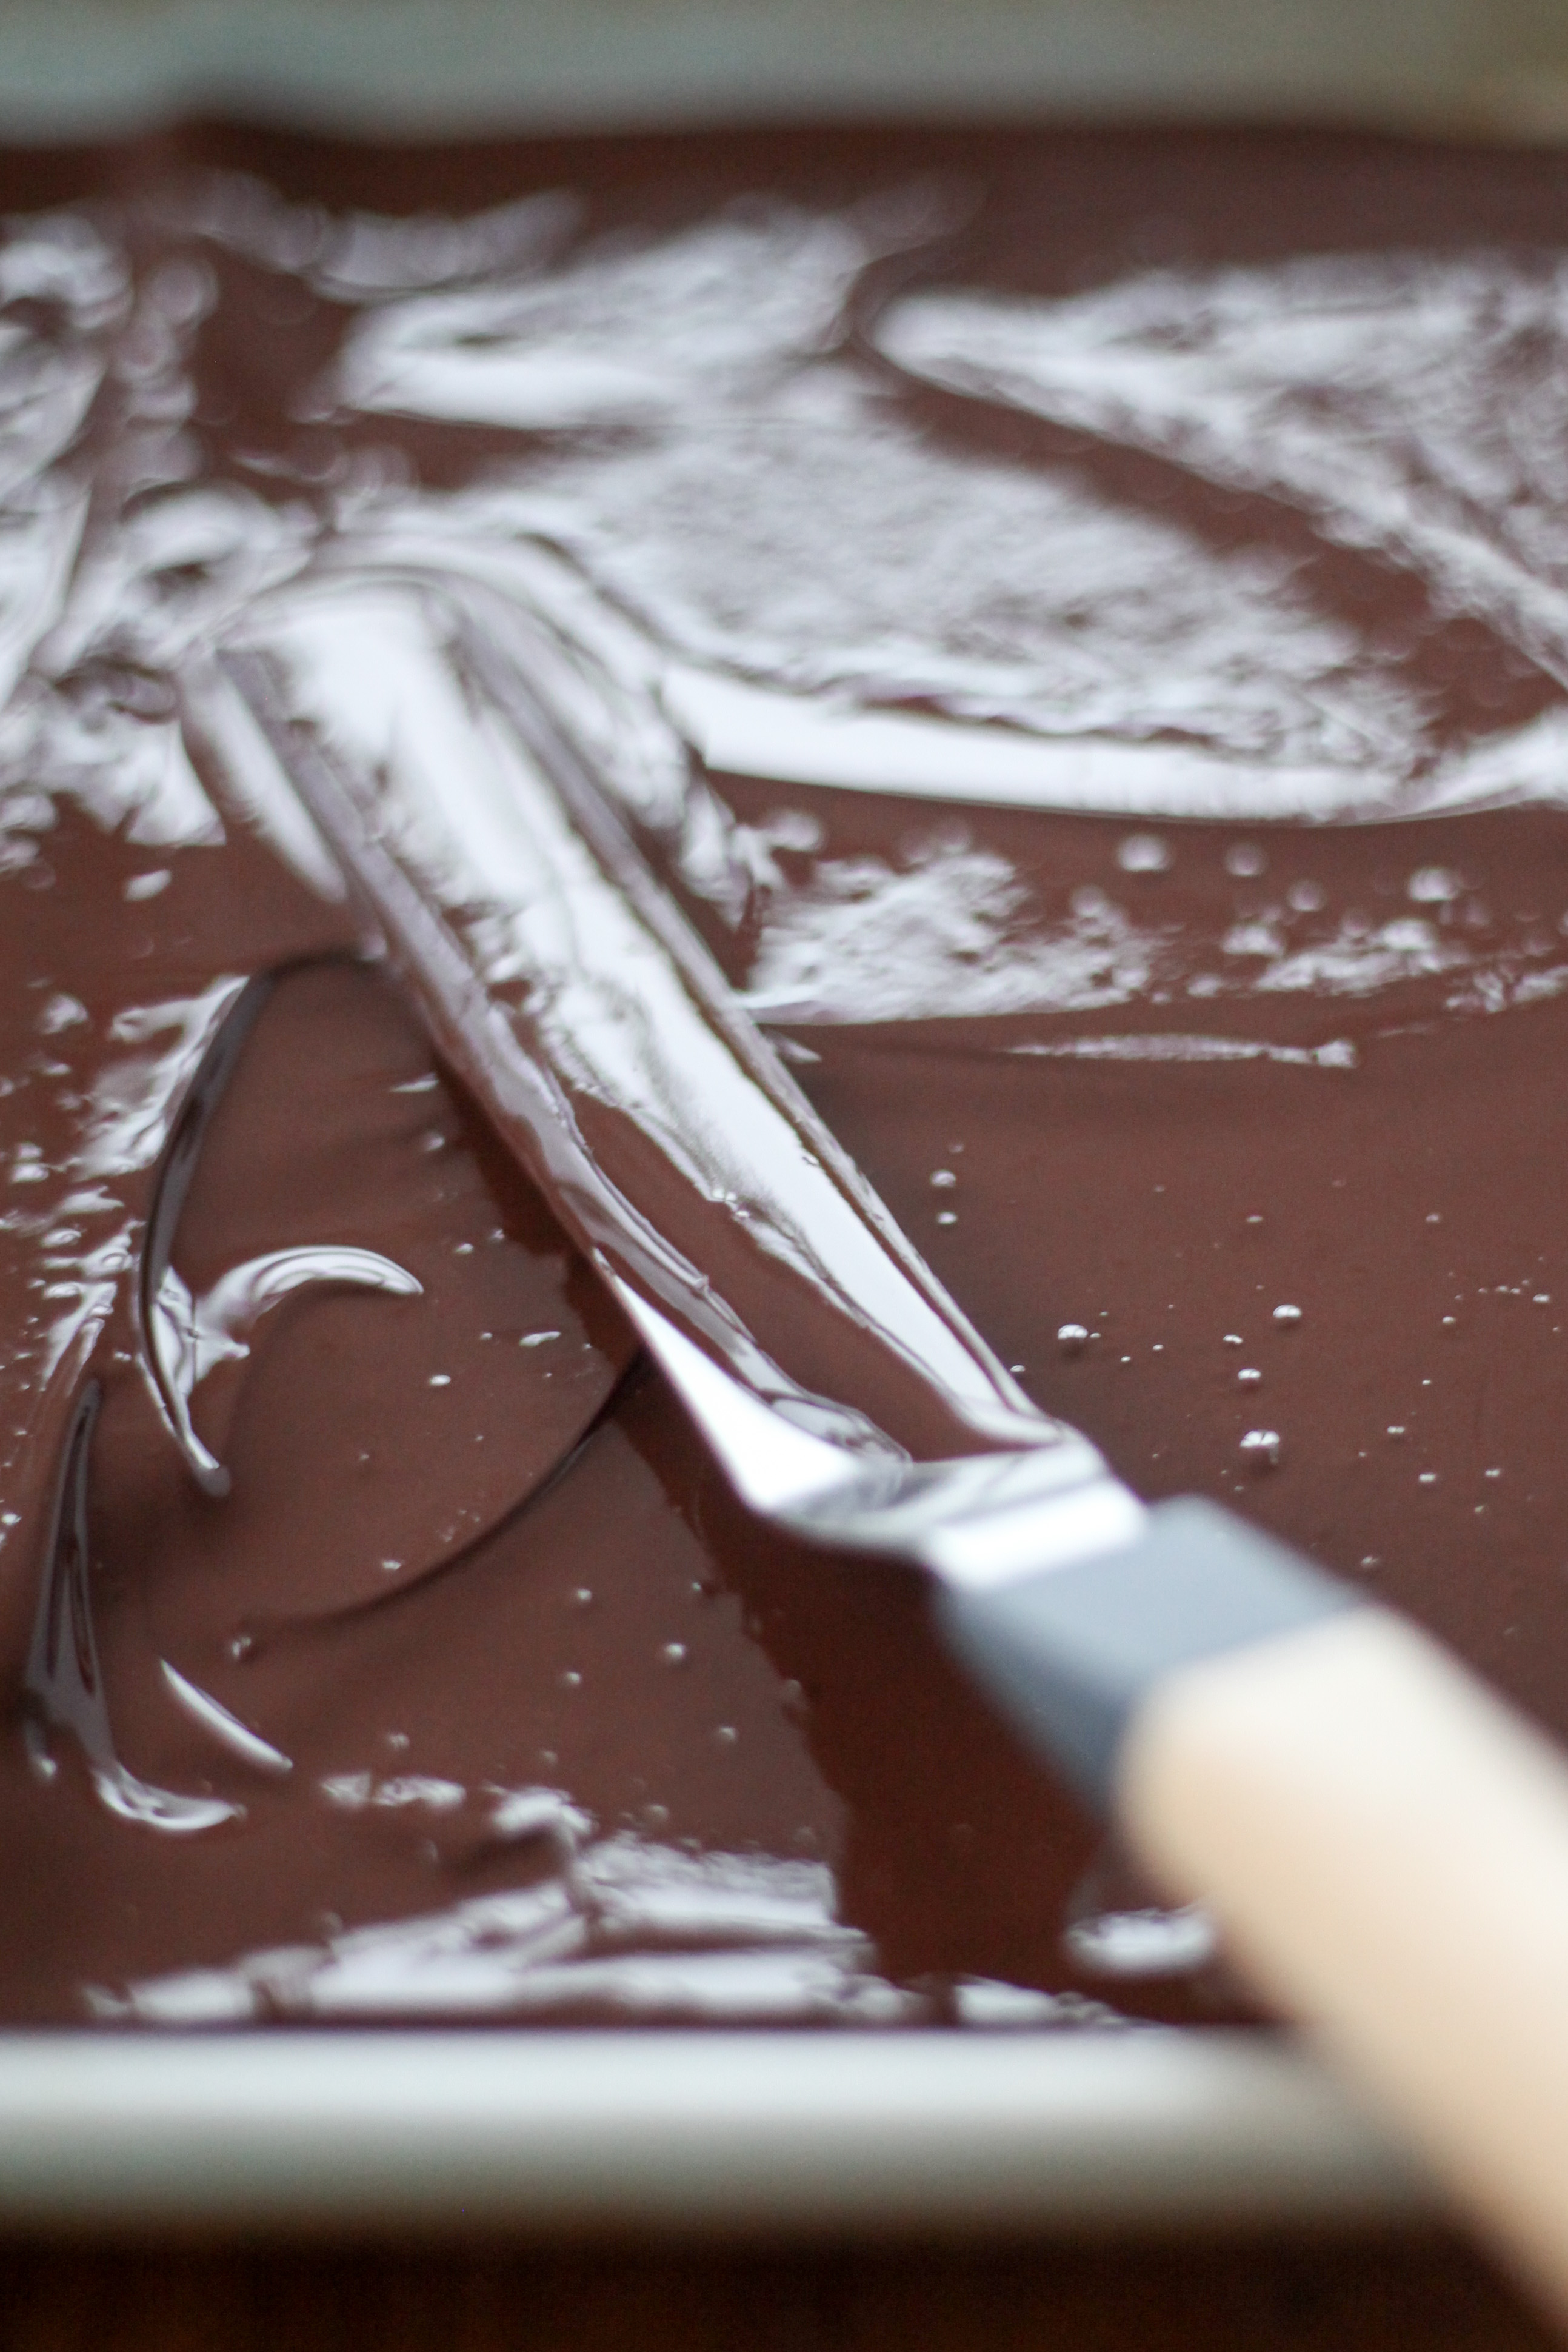 Spreading melted chocolate